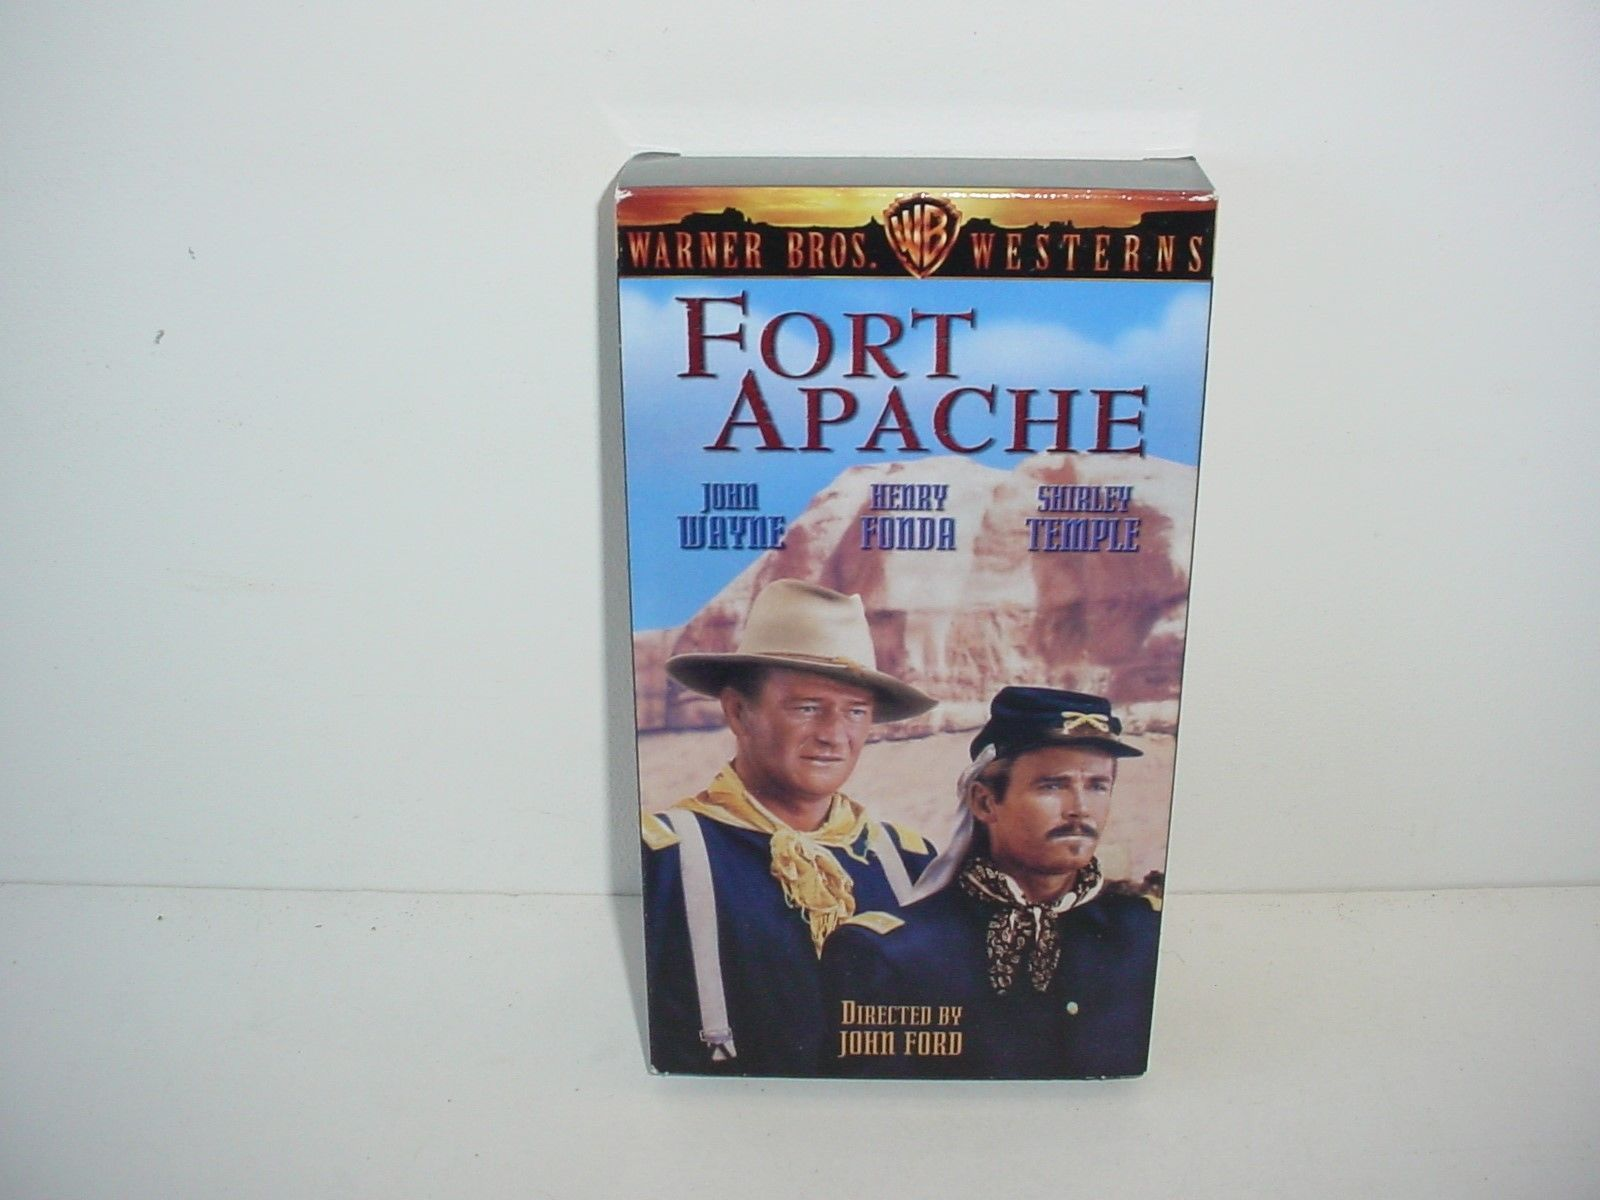 Primary image for Fort Apache VHS Video Tape Movie